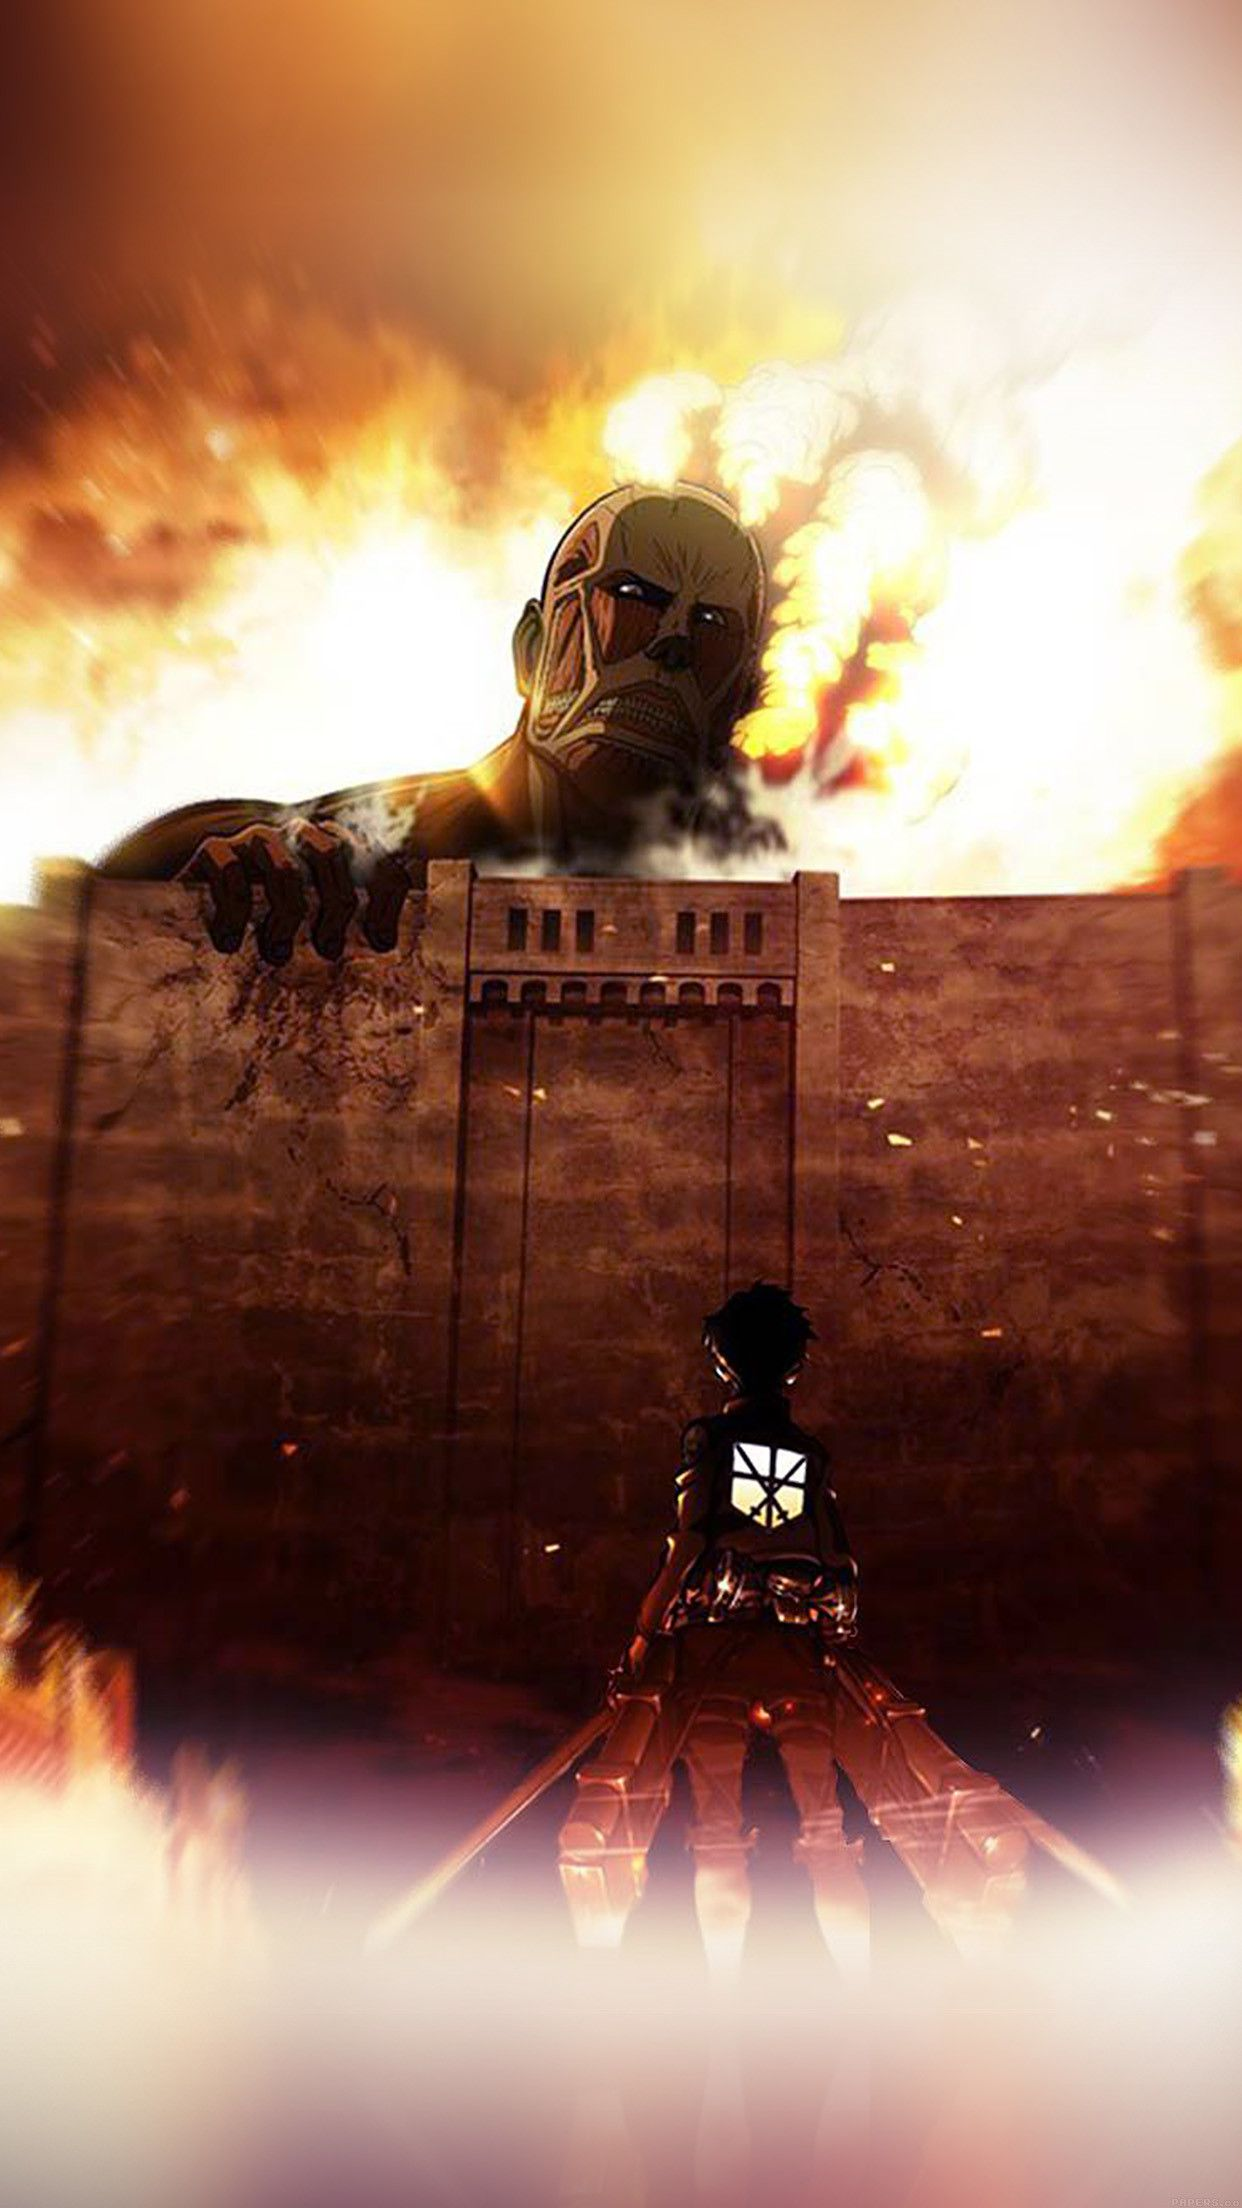 Attack On Titan Iphone Wallpapers On Wallpaperdog